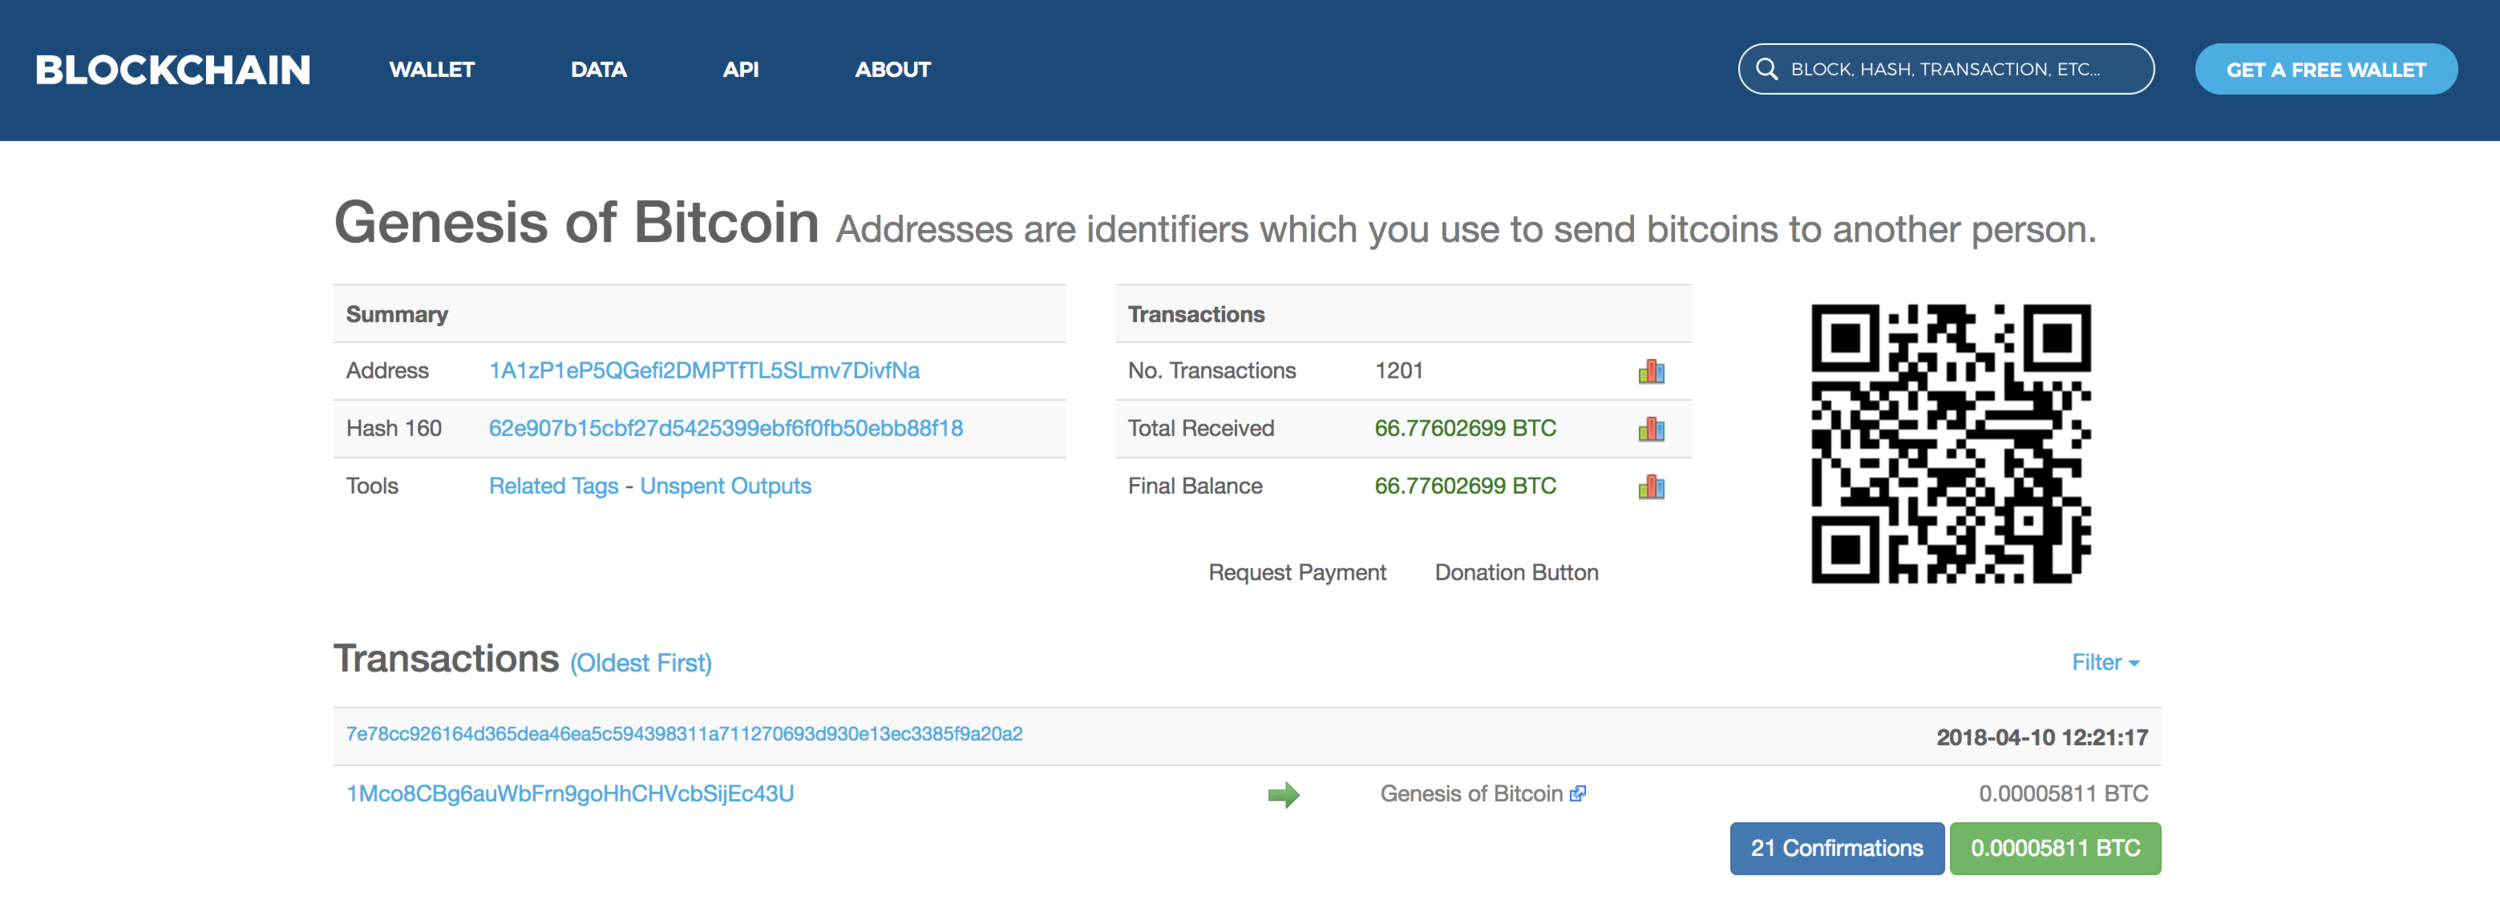 Blockchain,info Bitcoin Block Explorer